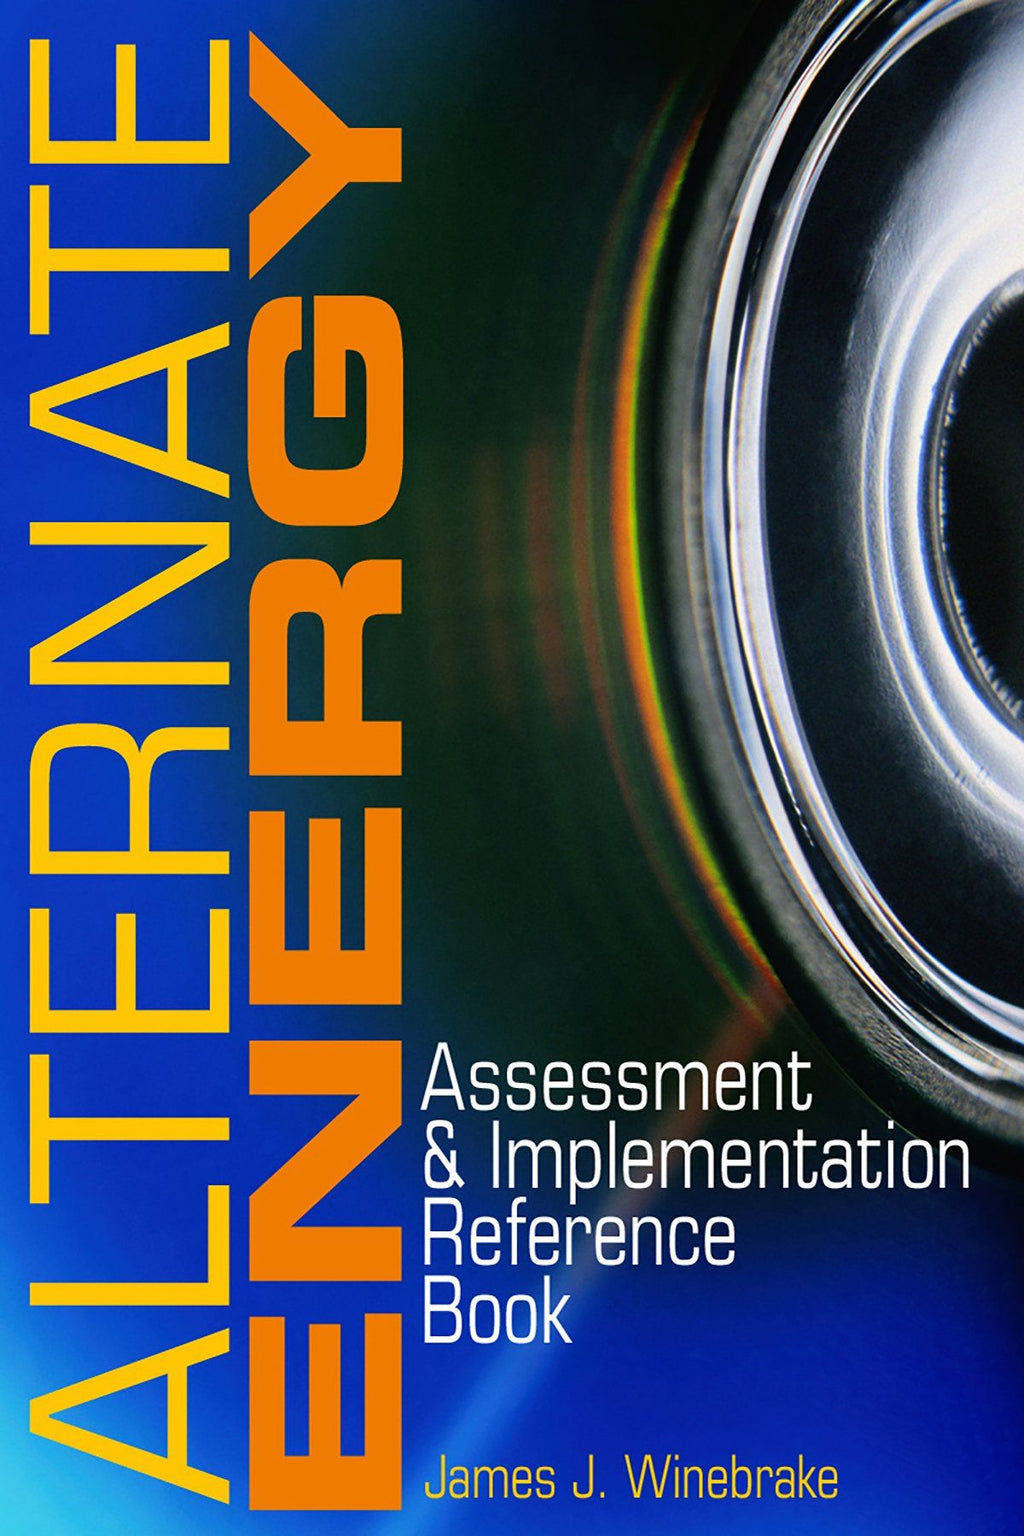 Alternate Energy: Assessment & Implementation Reference Book - AEE Programs